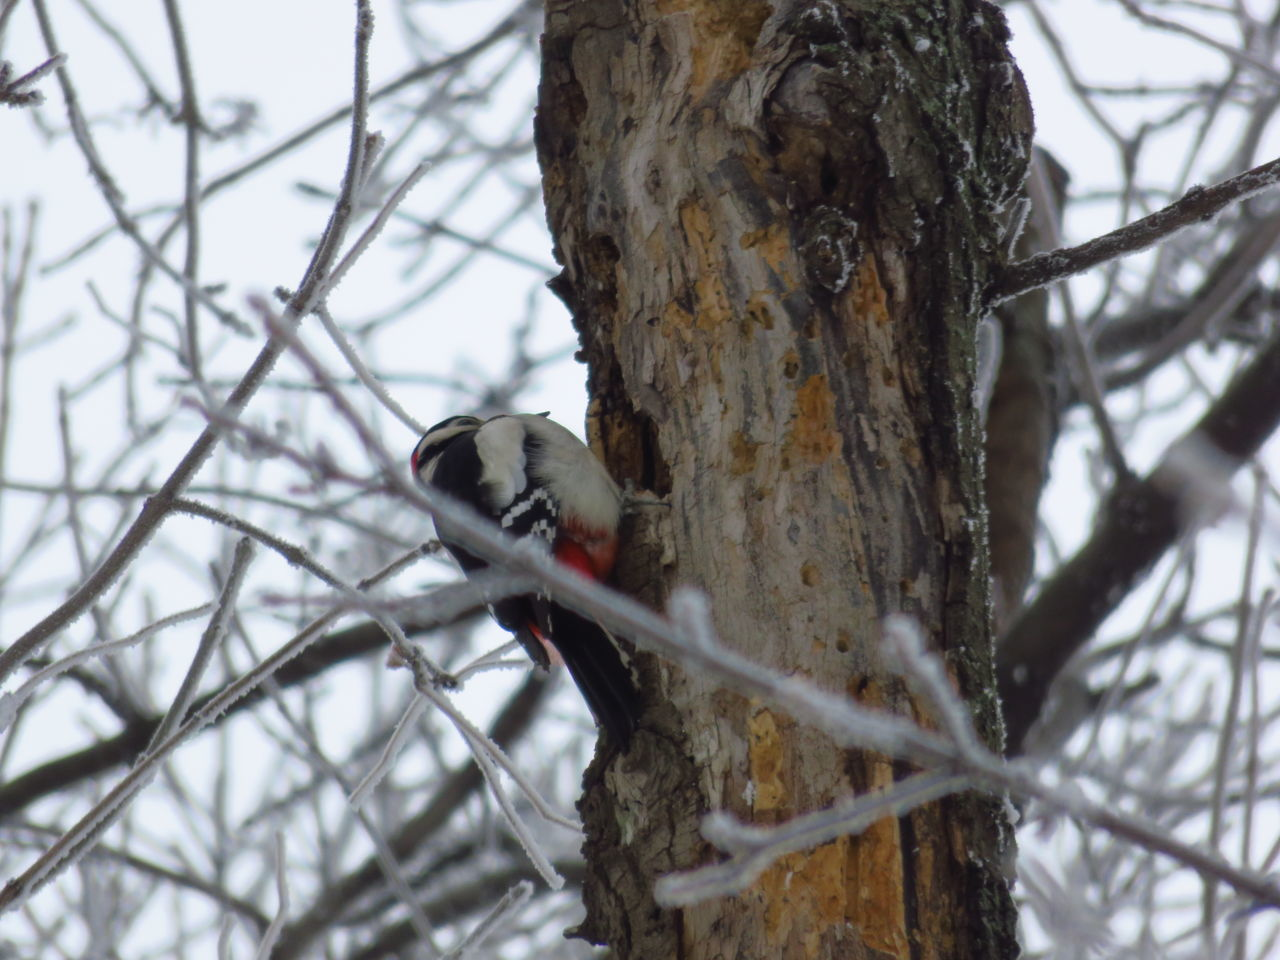 Animal Themes Animal Wildlife Animals In The Wild Bare Tree Bird Branch Day Low Angle View Nature No People One Animal Outdoors Perching Tree Tree Trunk Winter Woodpecker